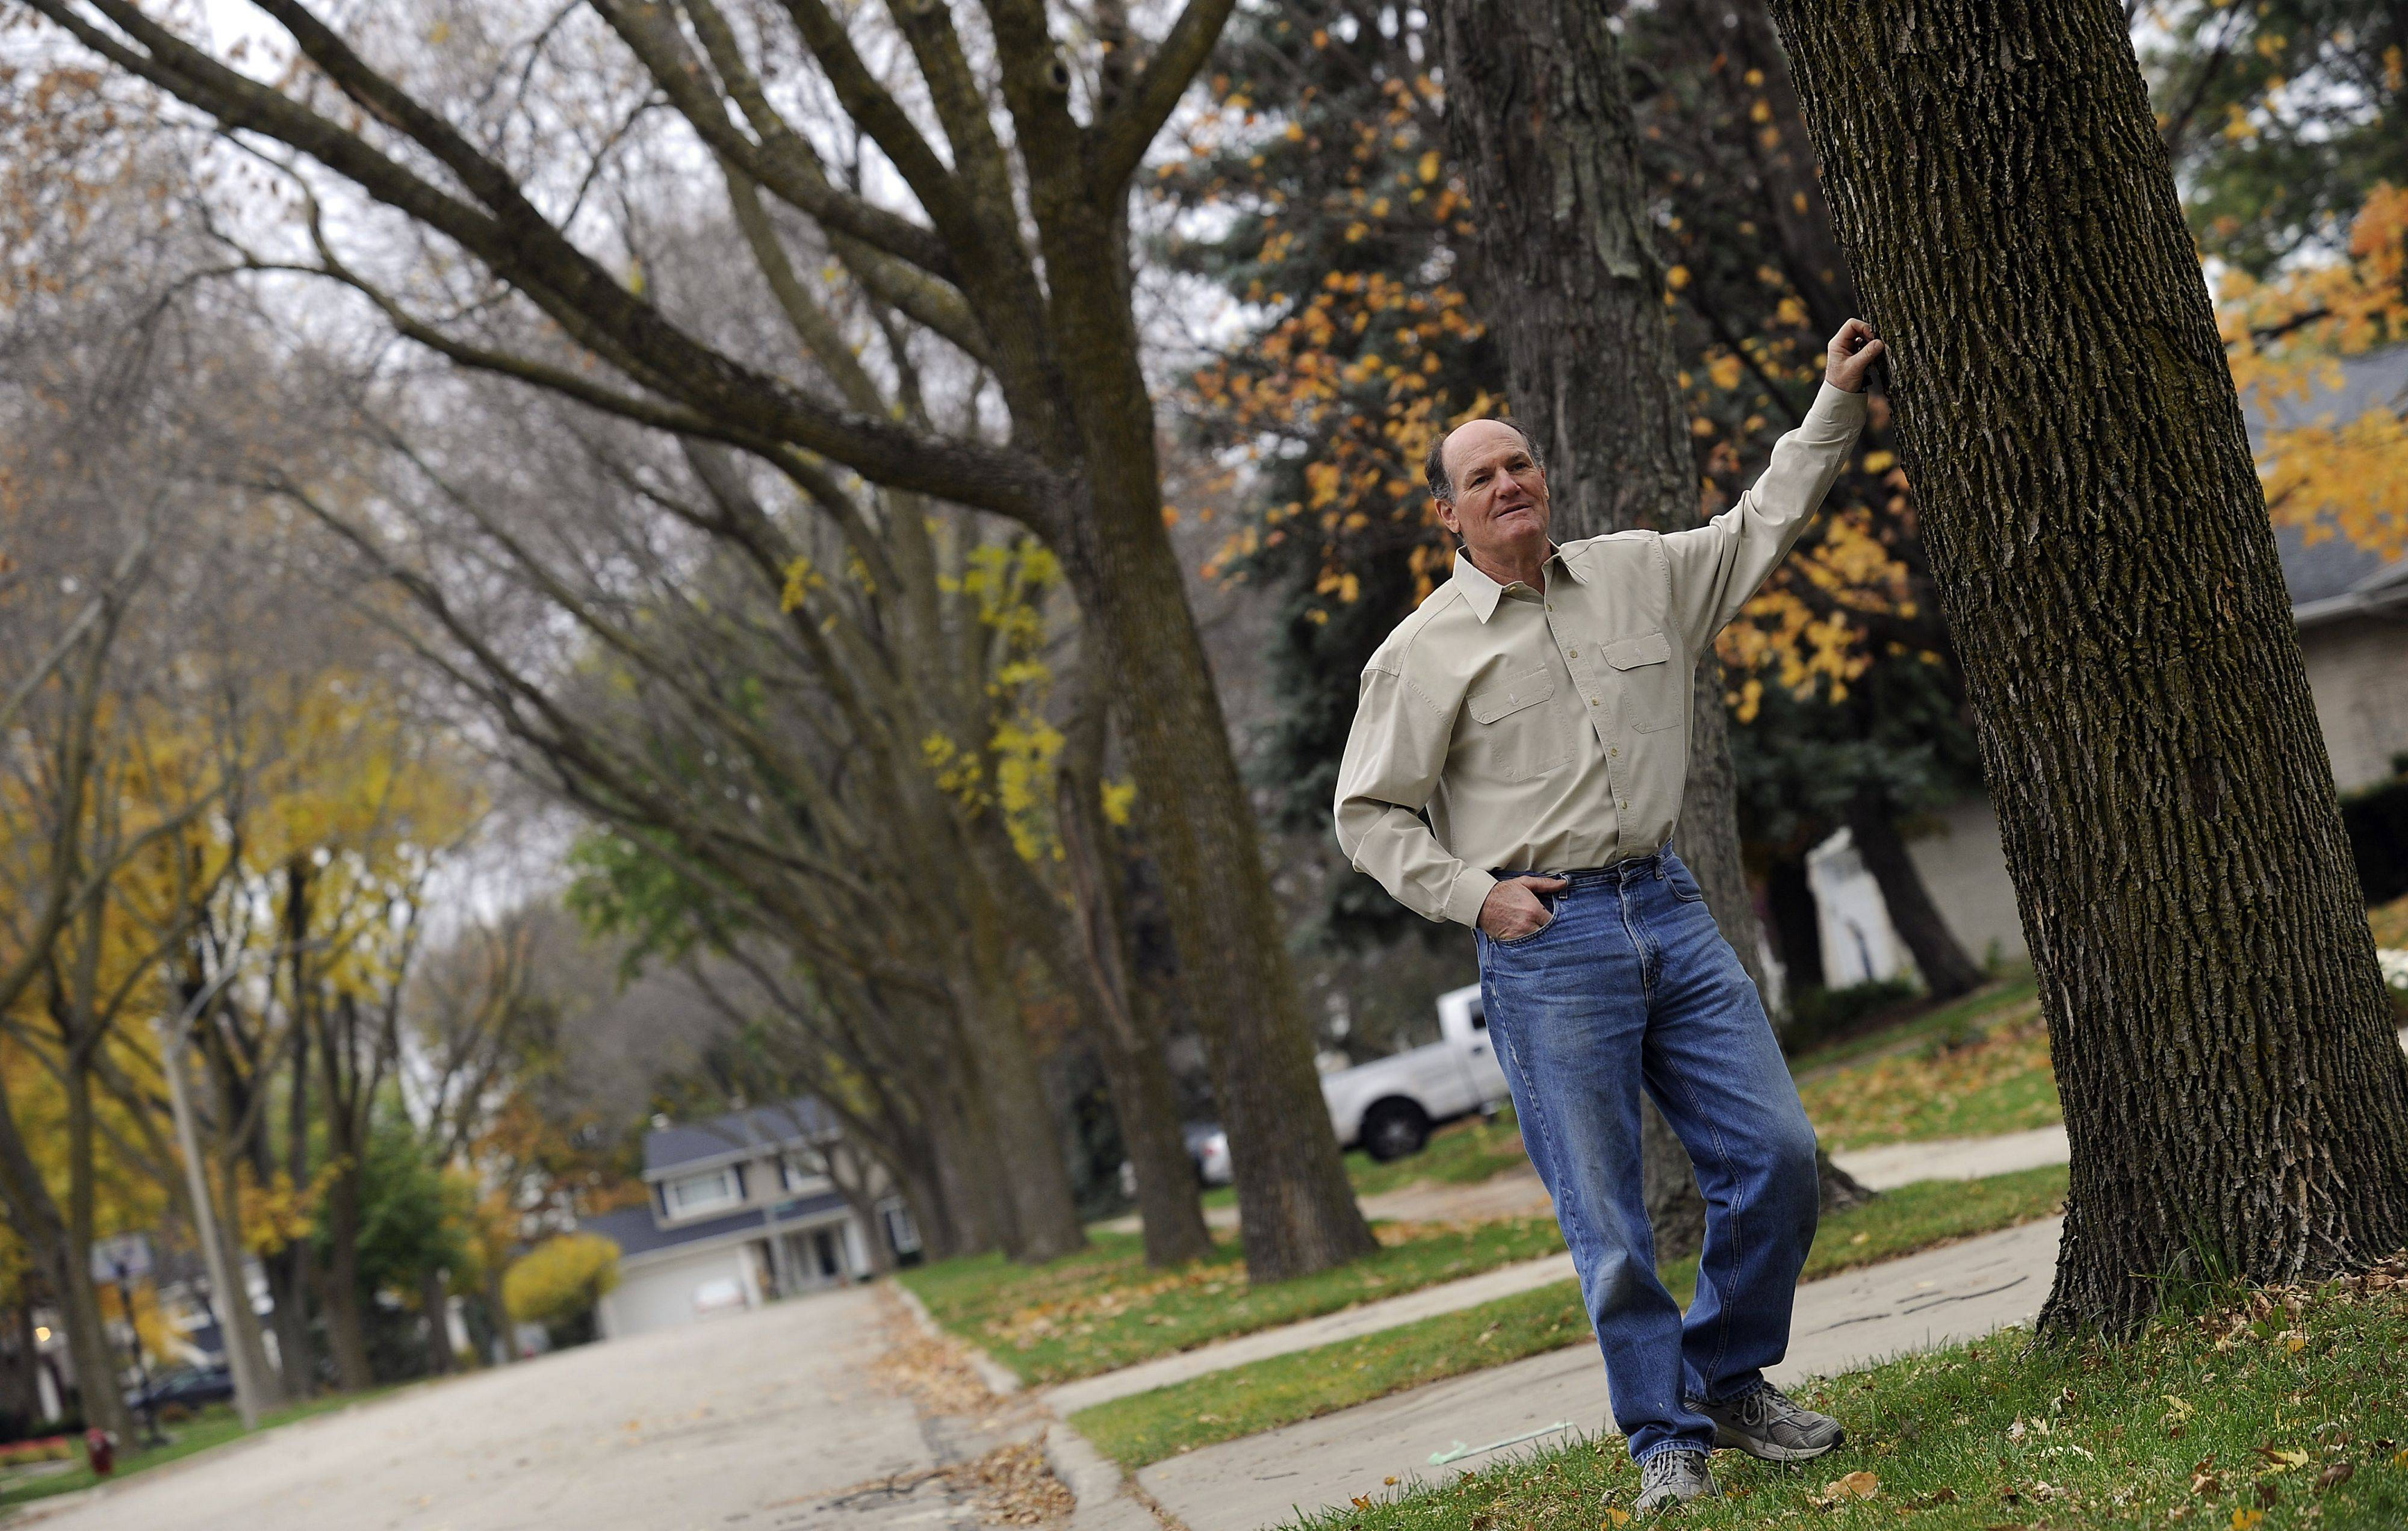 Sam Moser has no ash trees on his parkway, but he loves living on a street lined with the graceful trees. He led a campaign that got 150 trees in the Heritage Park neighborhood of Arlington Heights injected with insecticide to save them from emerald ash borer.